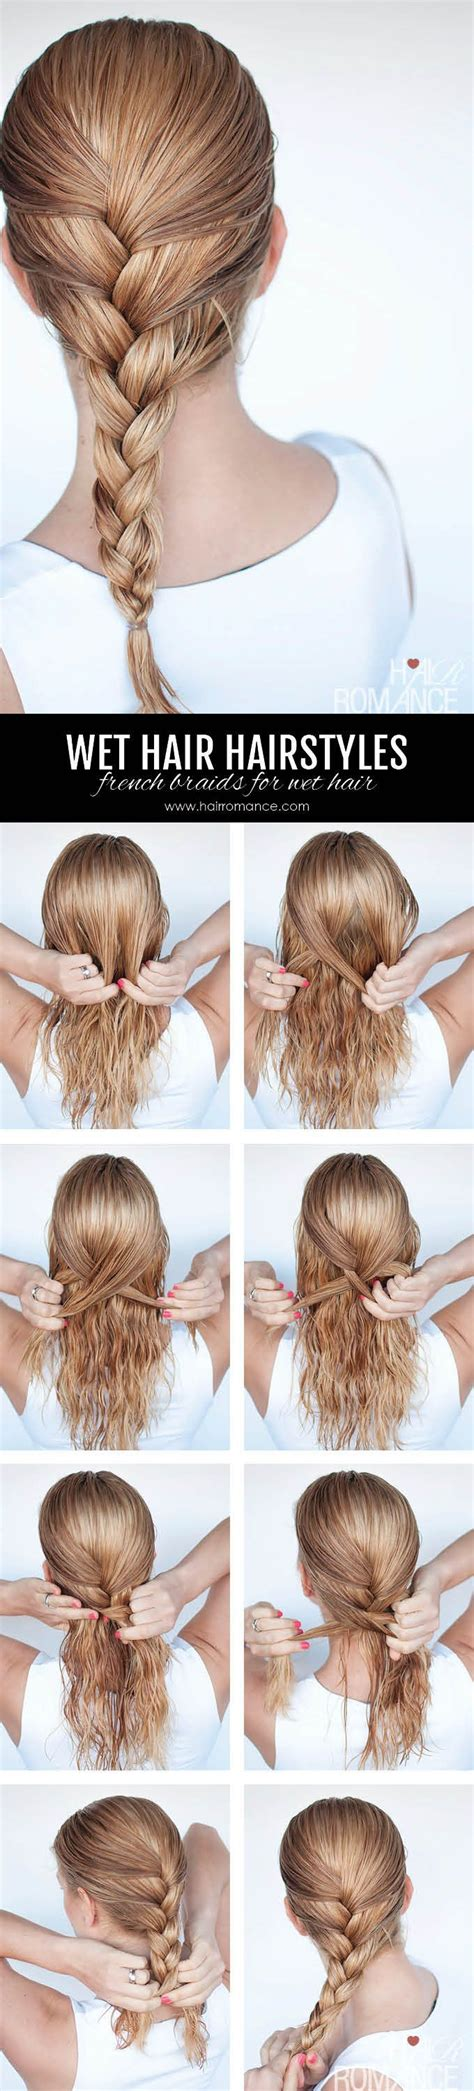 wet hair hairstyles ideas  pinterest quick easy hairstyles hair  work  quick